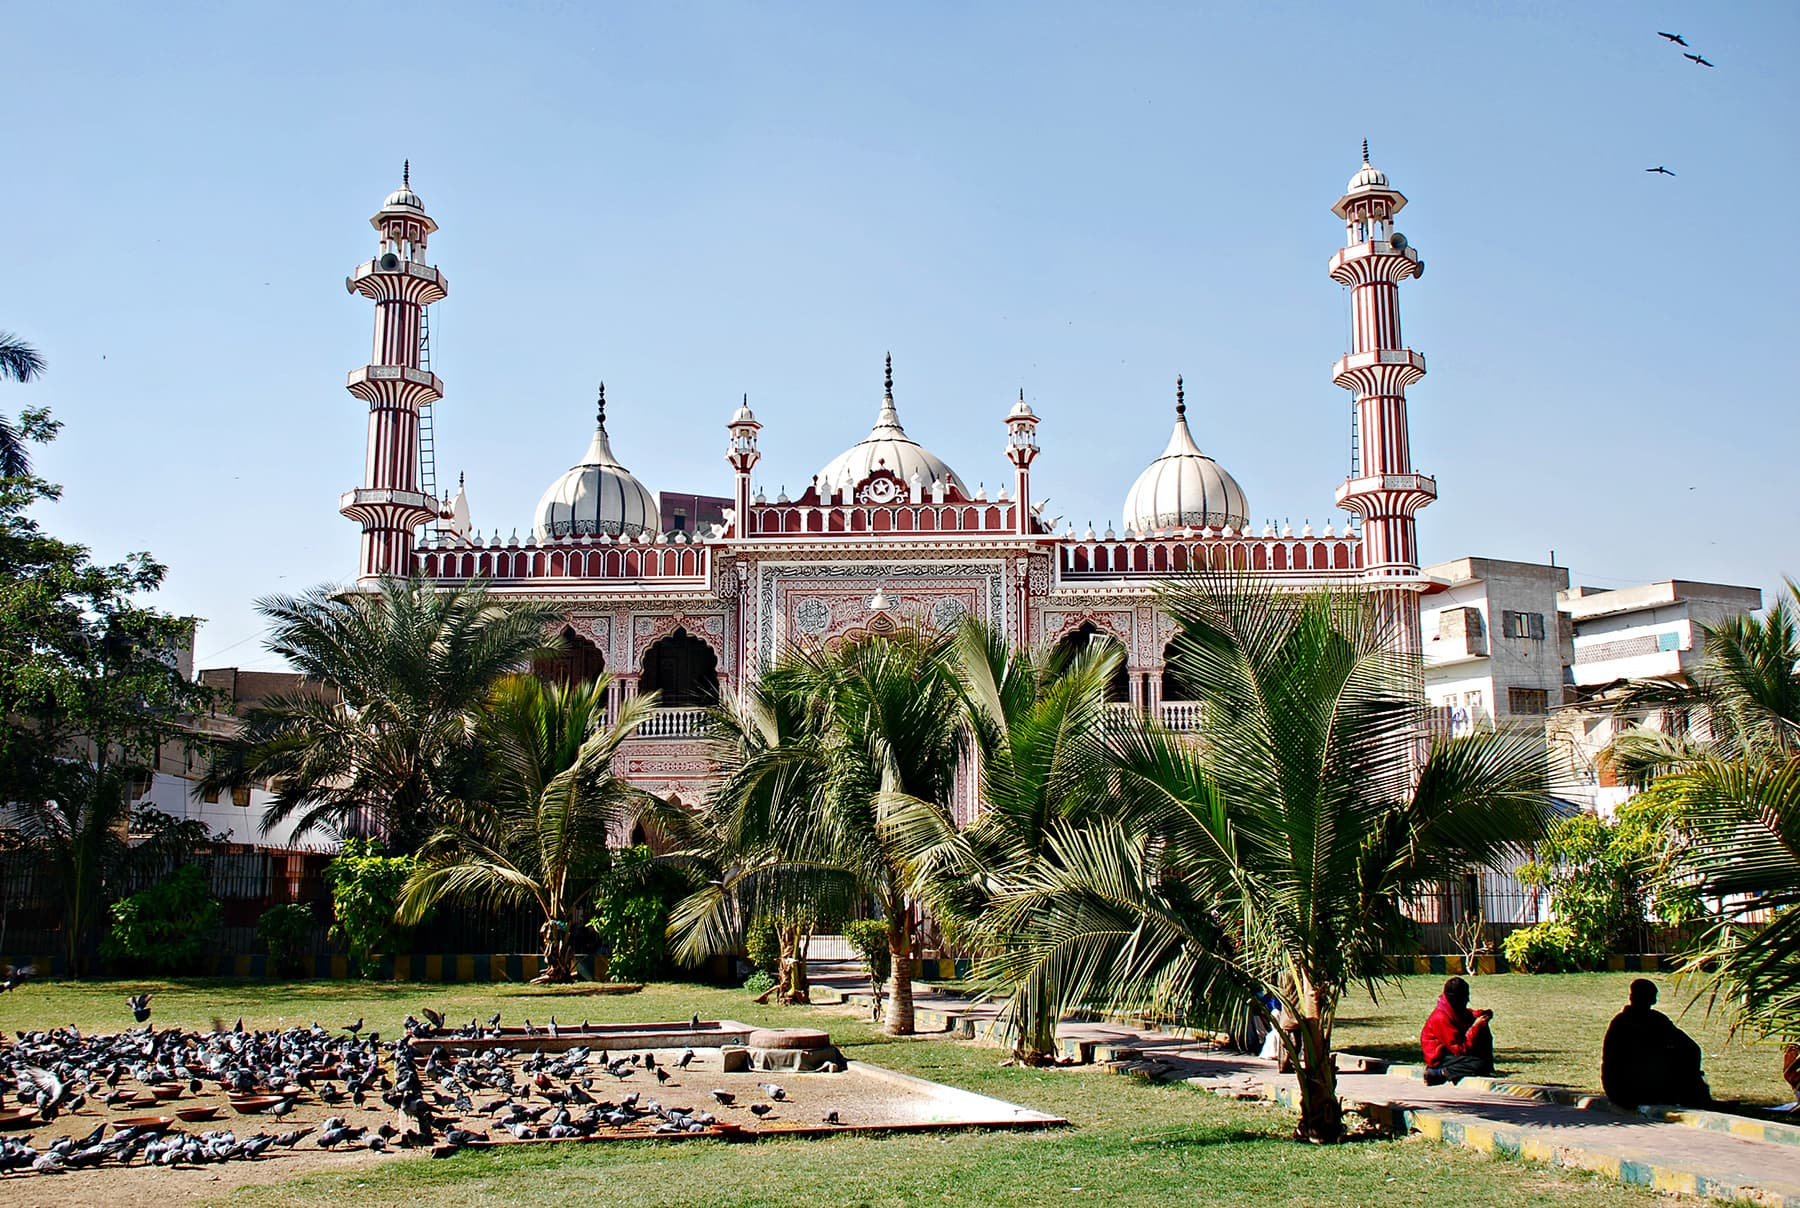 The area was filled with temples once, but now the only visible landmark in Aram Bagh is a mosque.